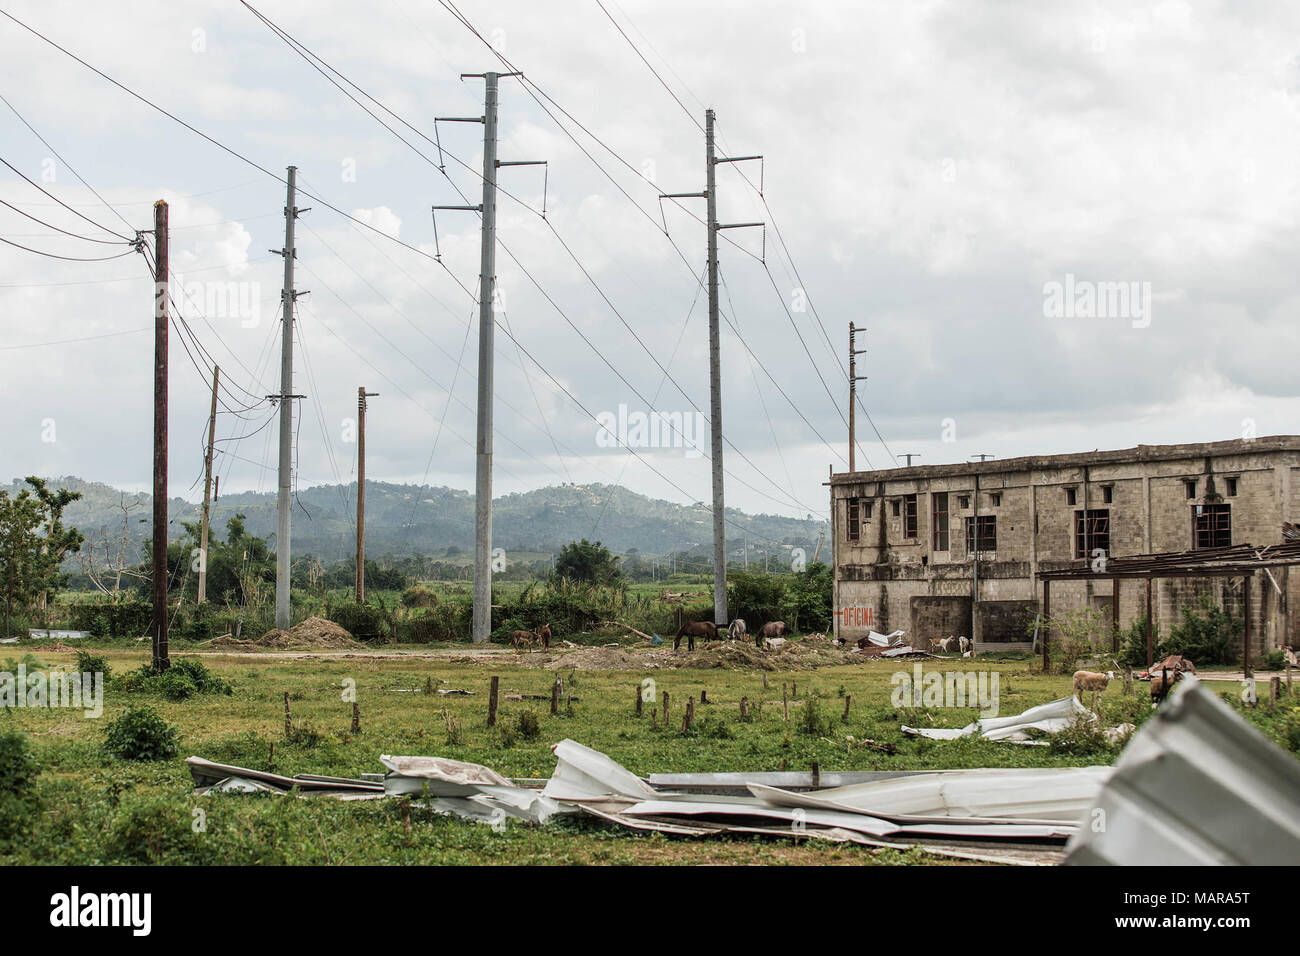 Mayaguez, Puerto Rico, Dec. 8, 2017--Contractors installed wood and aluminum poles to help restore electricity in Mayaguez. As assigned by FEMA, USACE leads the federal effort to repair the electrical power network damaged by the hurricanes, with support from the Government of Puerto Rico. FEMA/Eduardo Martinez - Stock Image